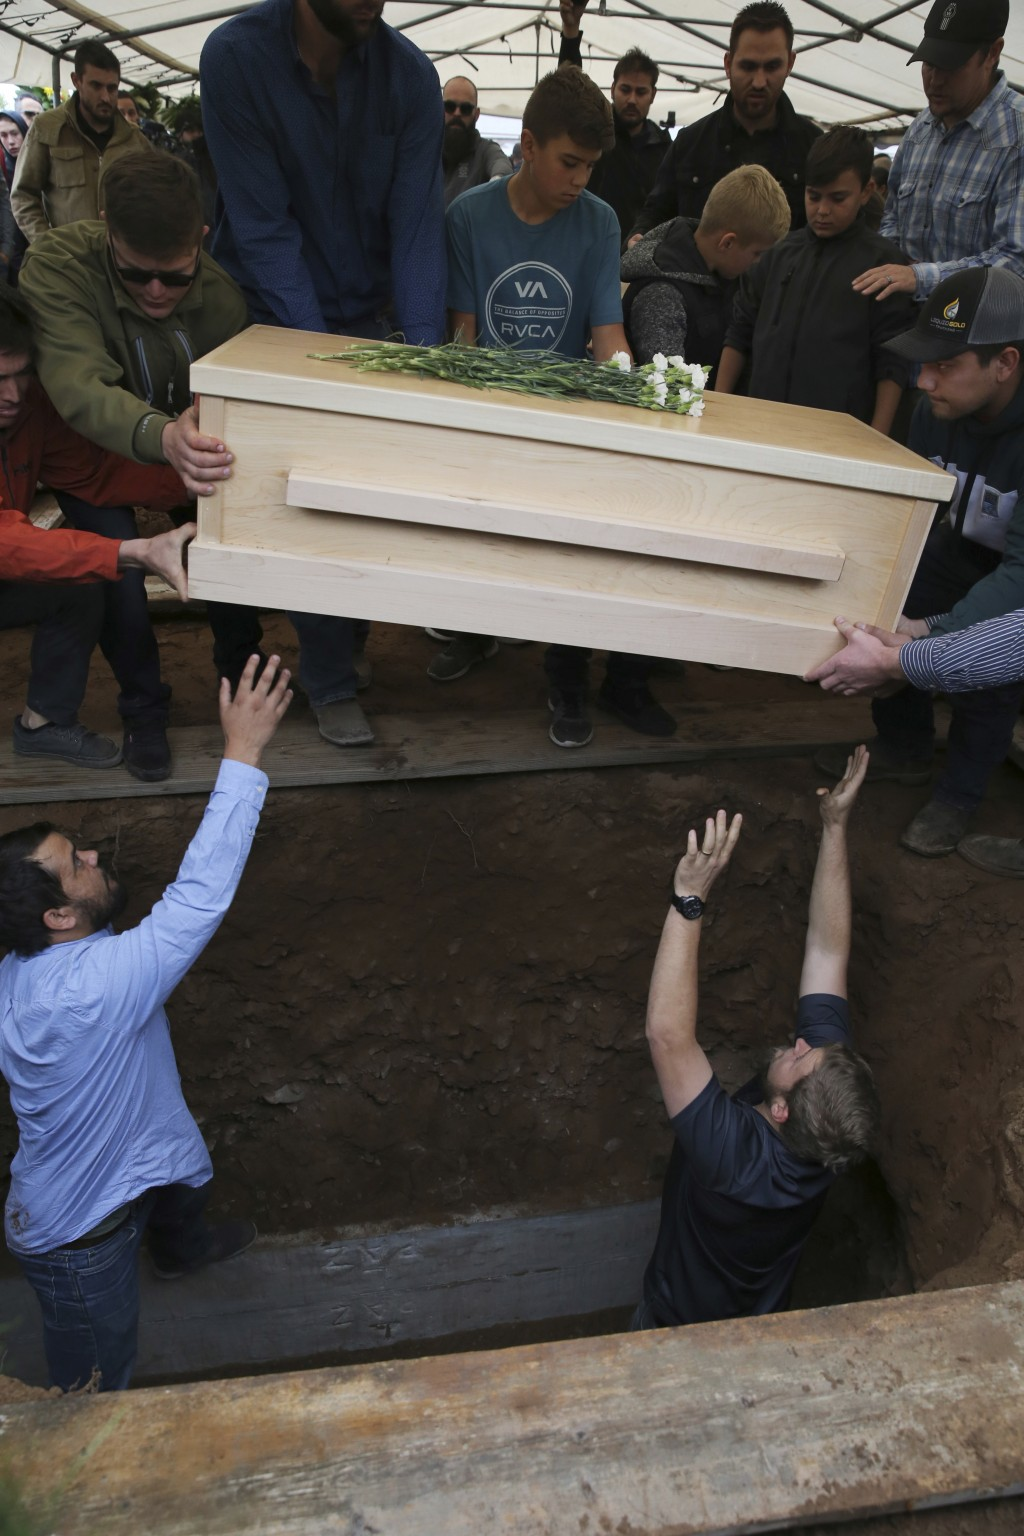 The coffin that contains the remains of 12-year-old Howard Jacob Miller Jr. is lowered into a grave at the cemetery in Colonia Le Baron, Mexico, Frida...